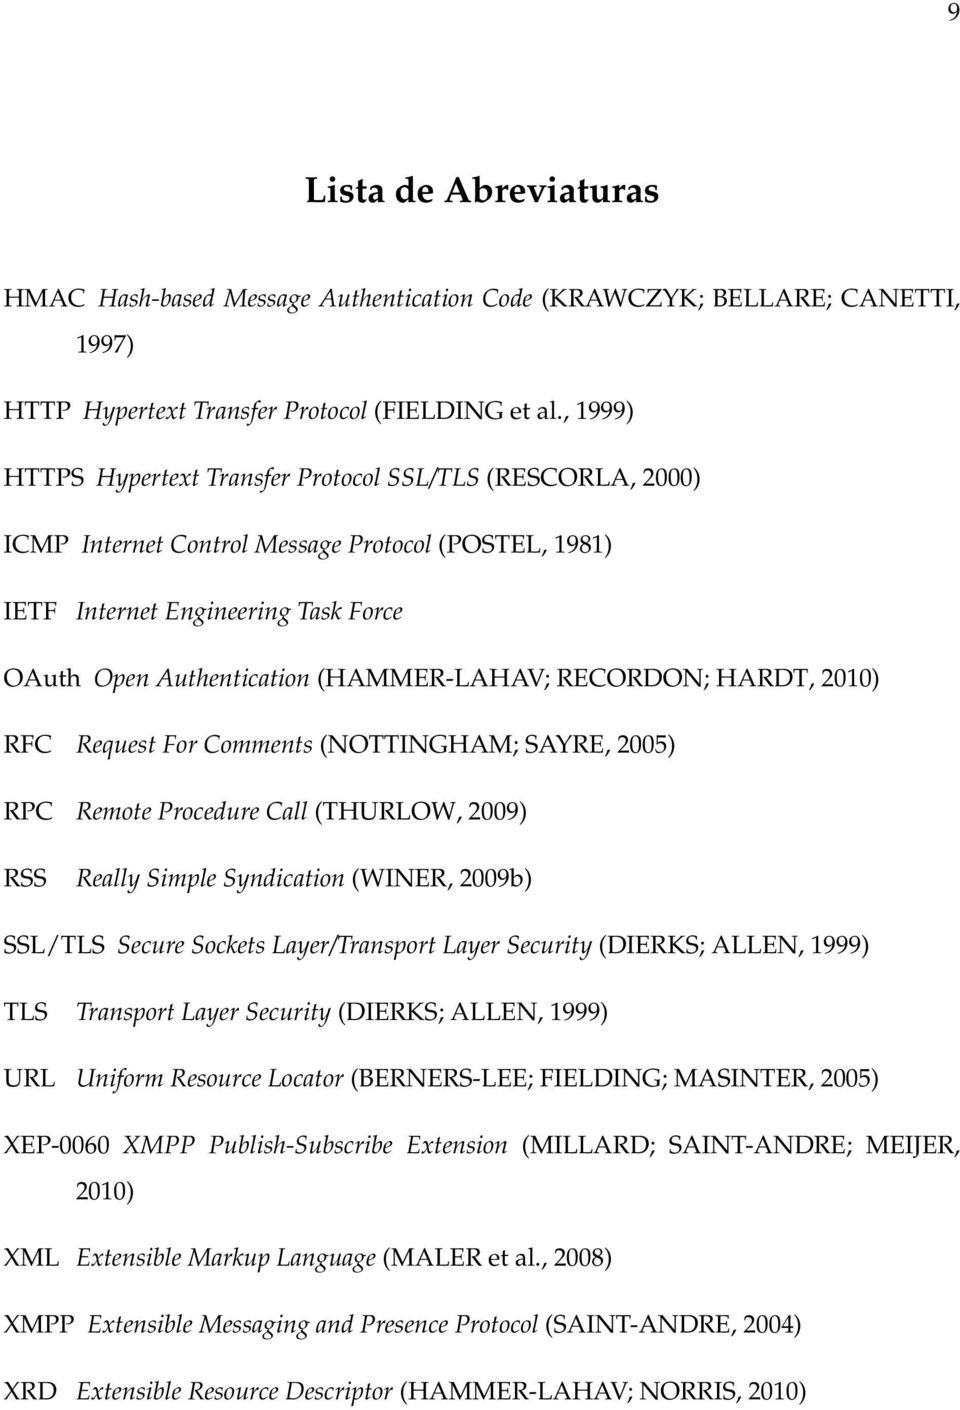 RECORDON; HARDT, 2010) RFC Request For Comments (NOTTINGHAM; SAYRE, 2005) RPC Remote Procedure Call (THURLOW, 2009) RSS Really Simple Syndication (WINER, 2009b) SSL/TLS Secure Sockets Layer/Transport